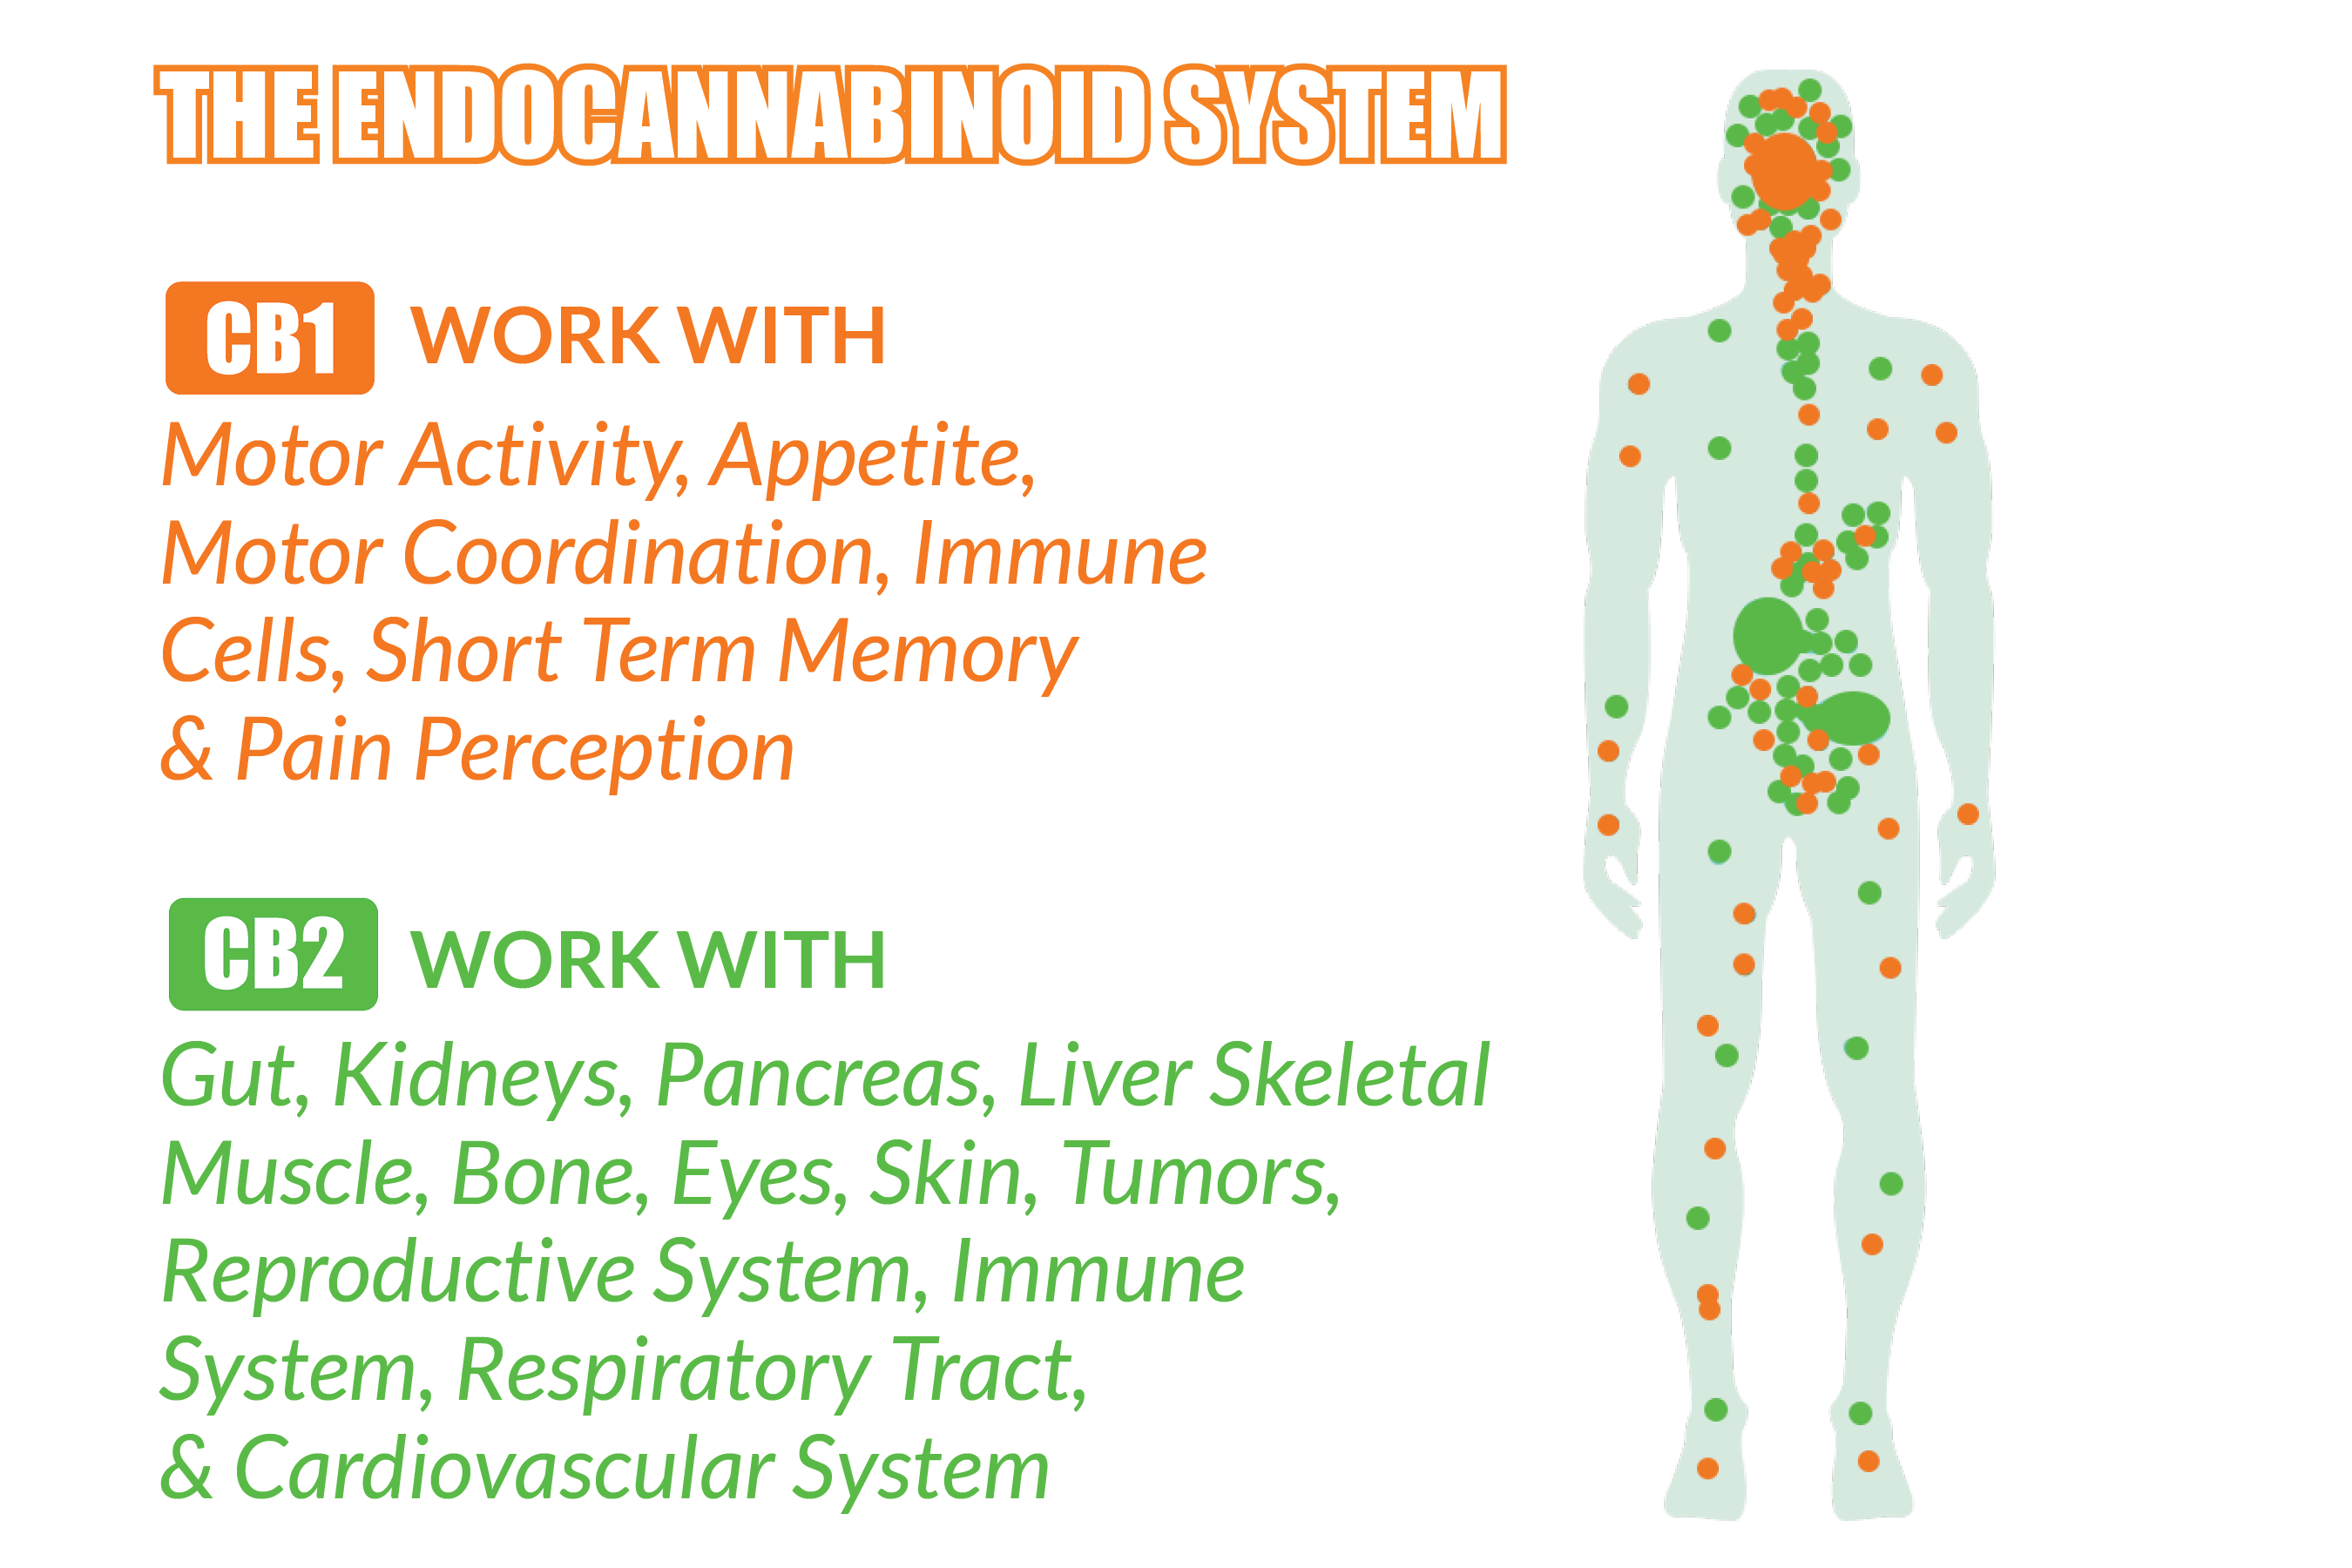 Endocannabinoid system and what functions it effects in the body